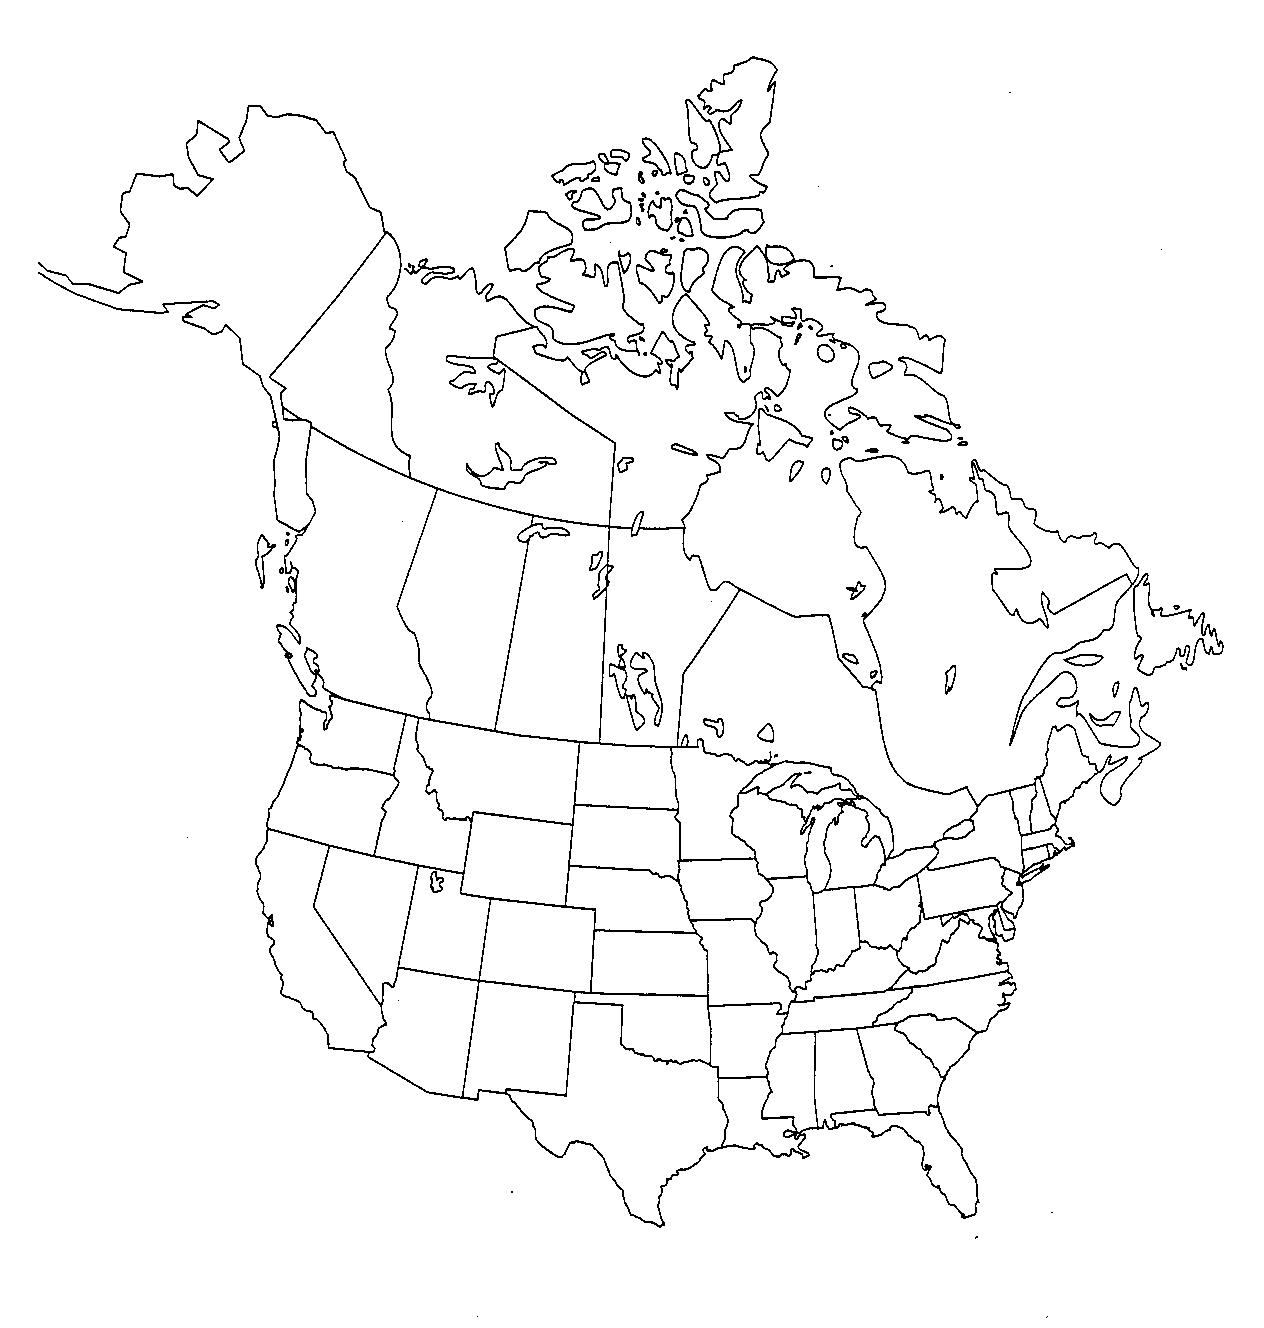 Usa And Canada Map My Blog US Canada Maps Archives Maps For - Us canada map with states